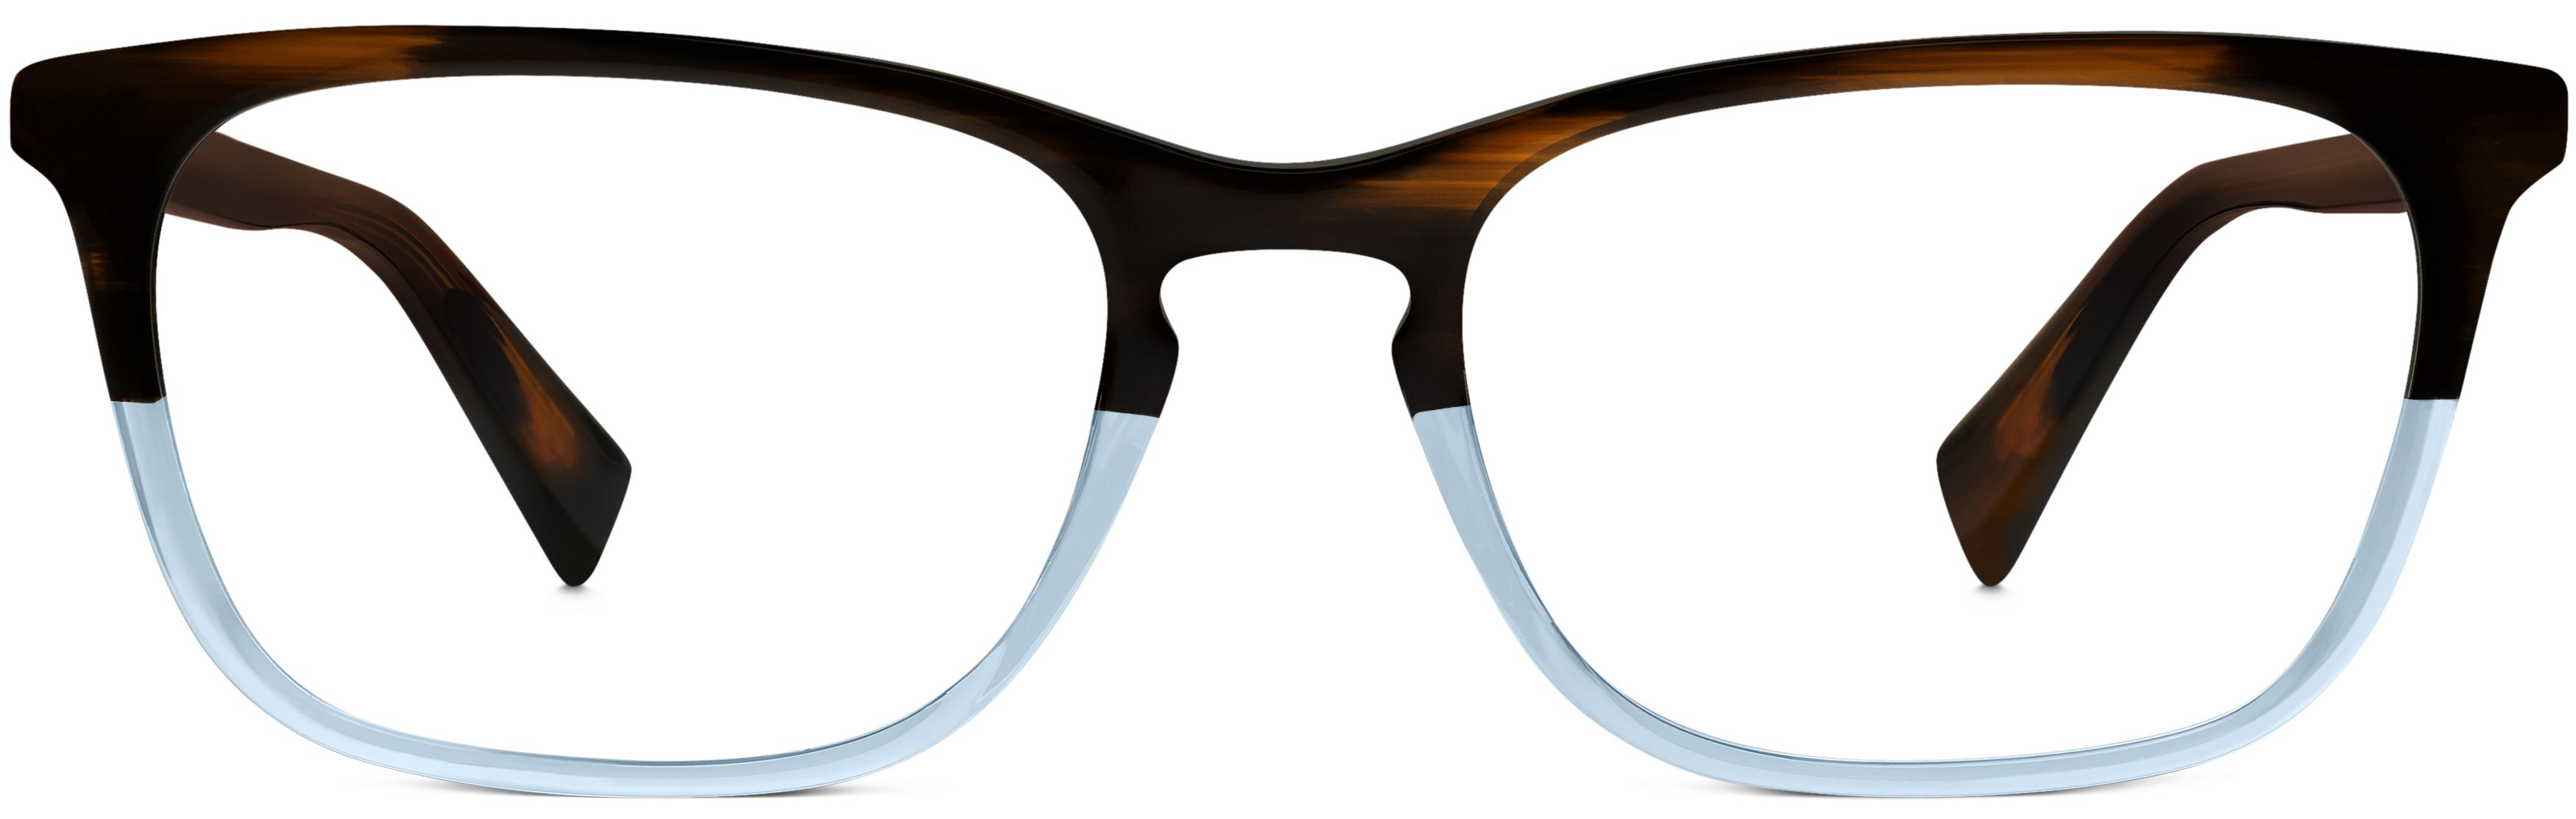 c56e1a54f15a Welty Eyeglasses in Eastern Bluebird Fade for Men